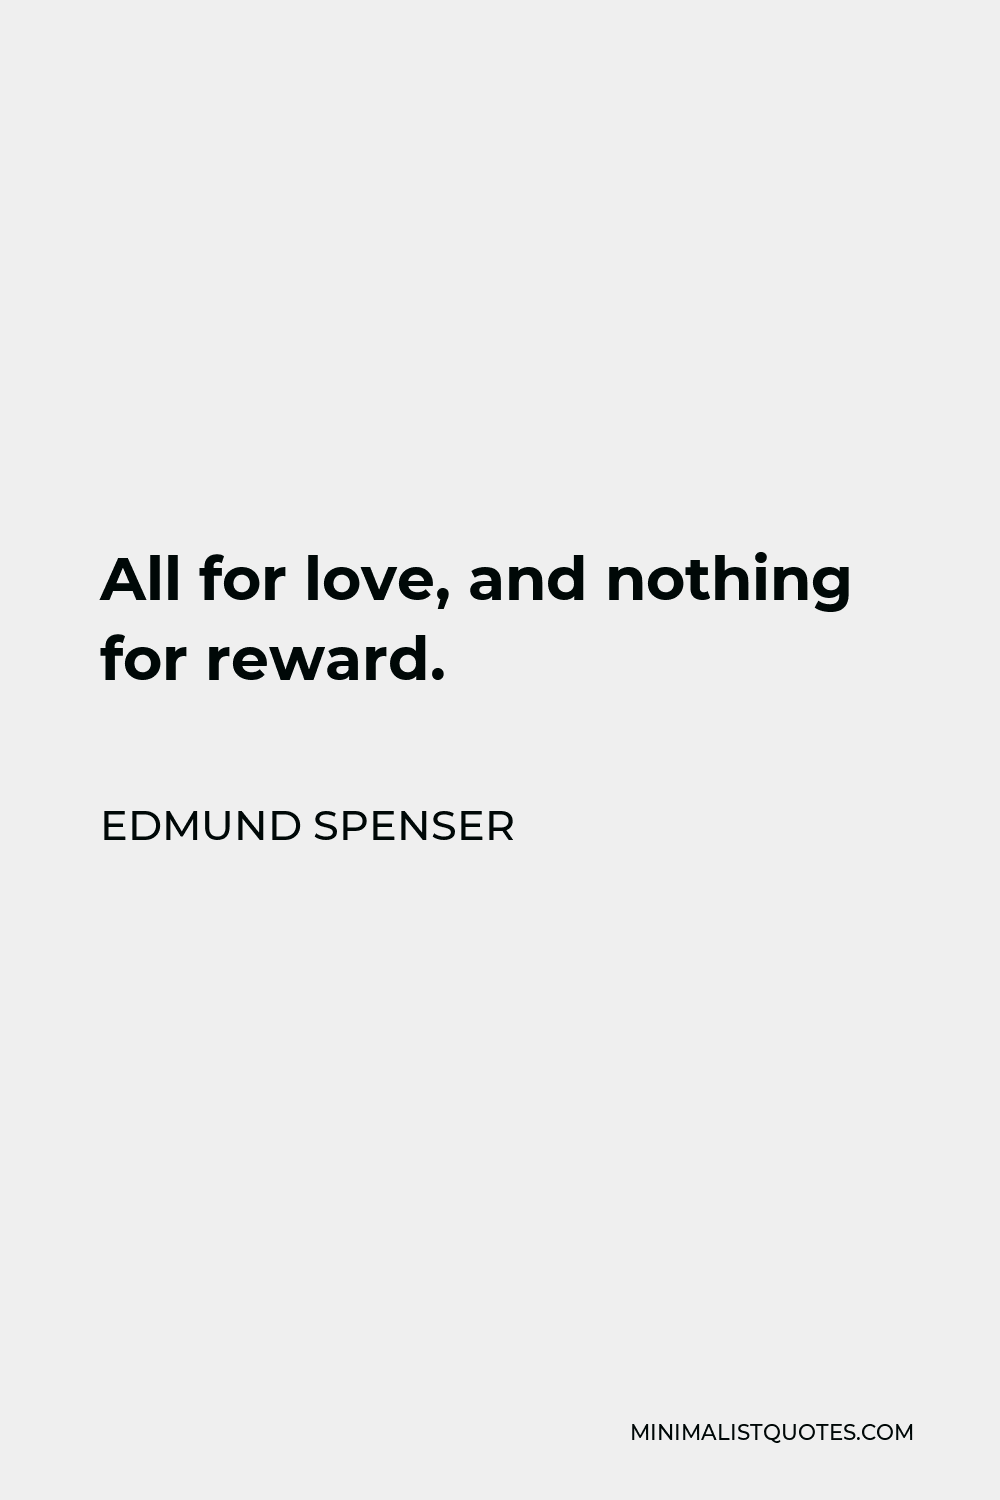 Edmund Spenser Quote - All for love, and nothing for reward.